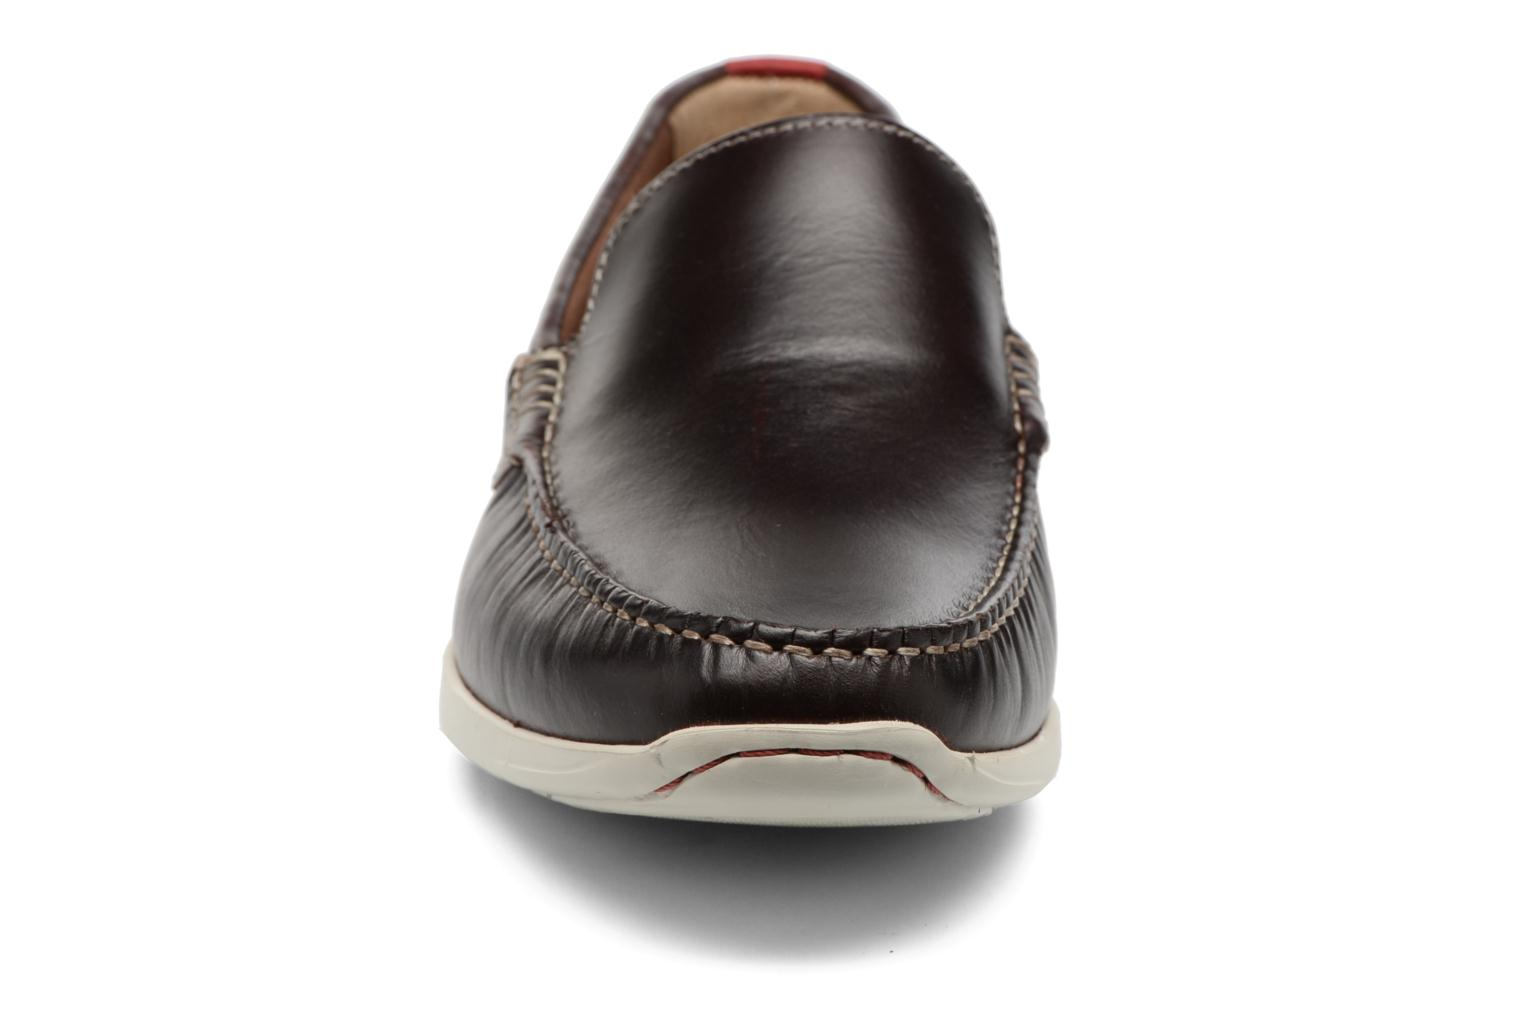 Karlock Lane Brown leather